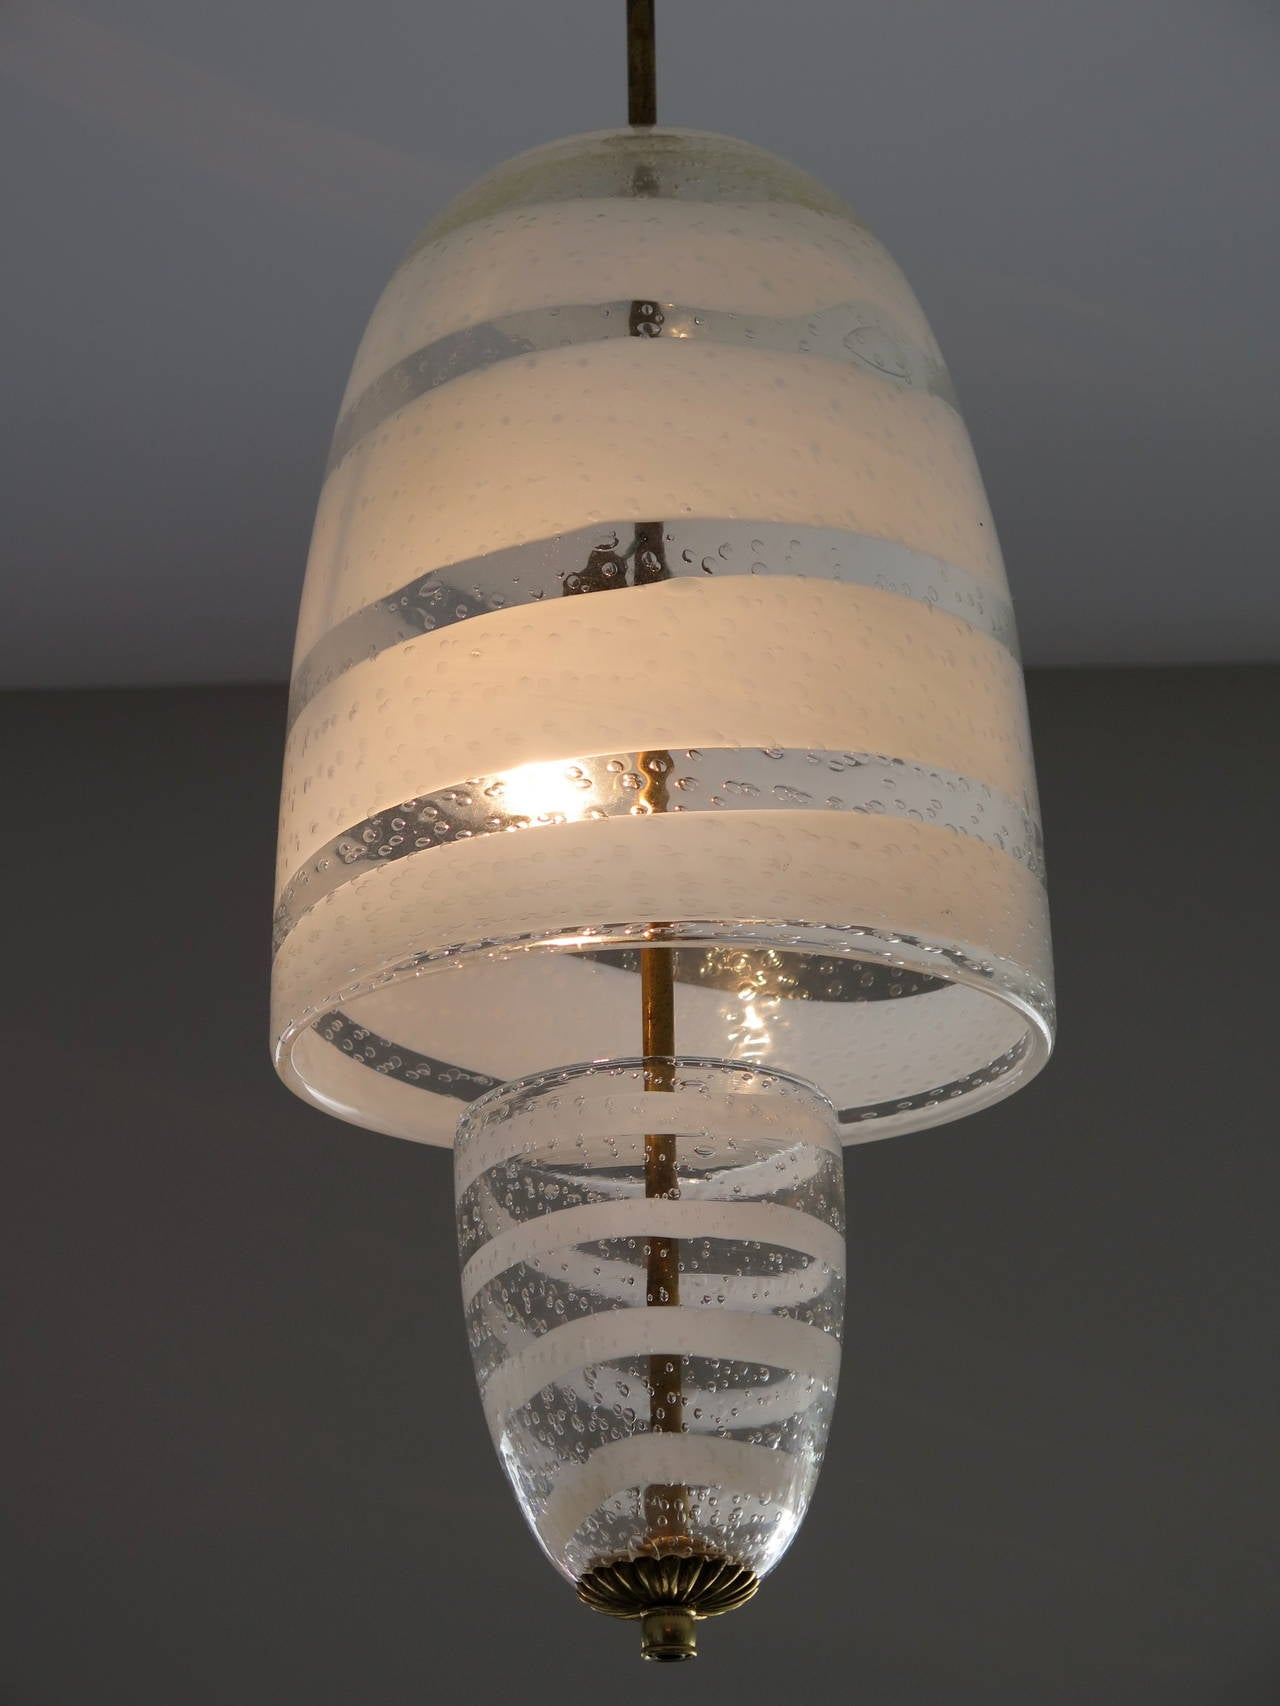 An unusual Italian chandelier by Seguso, circa 1950s. Cased white and clear glass with bubbles.